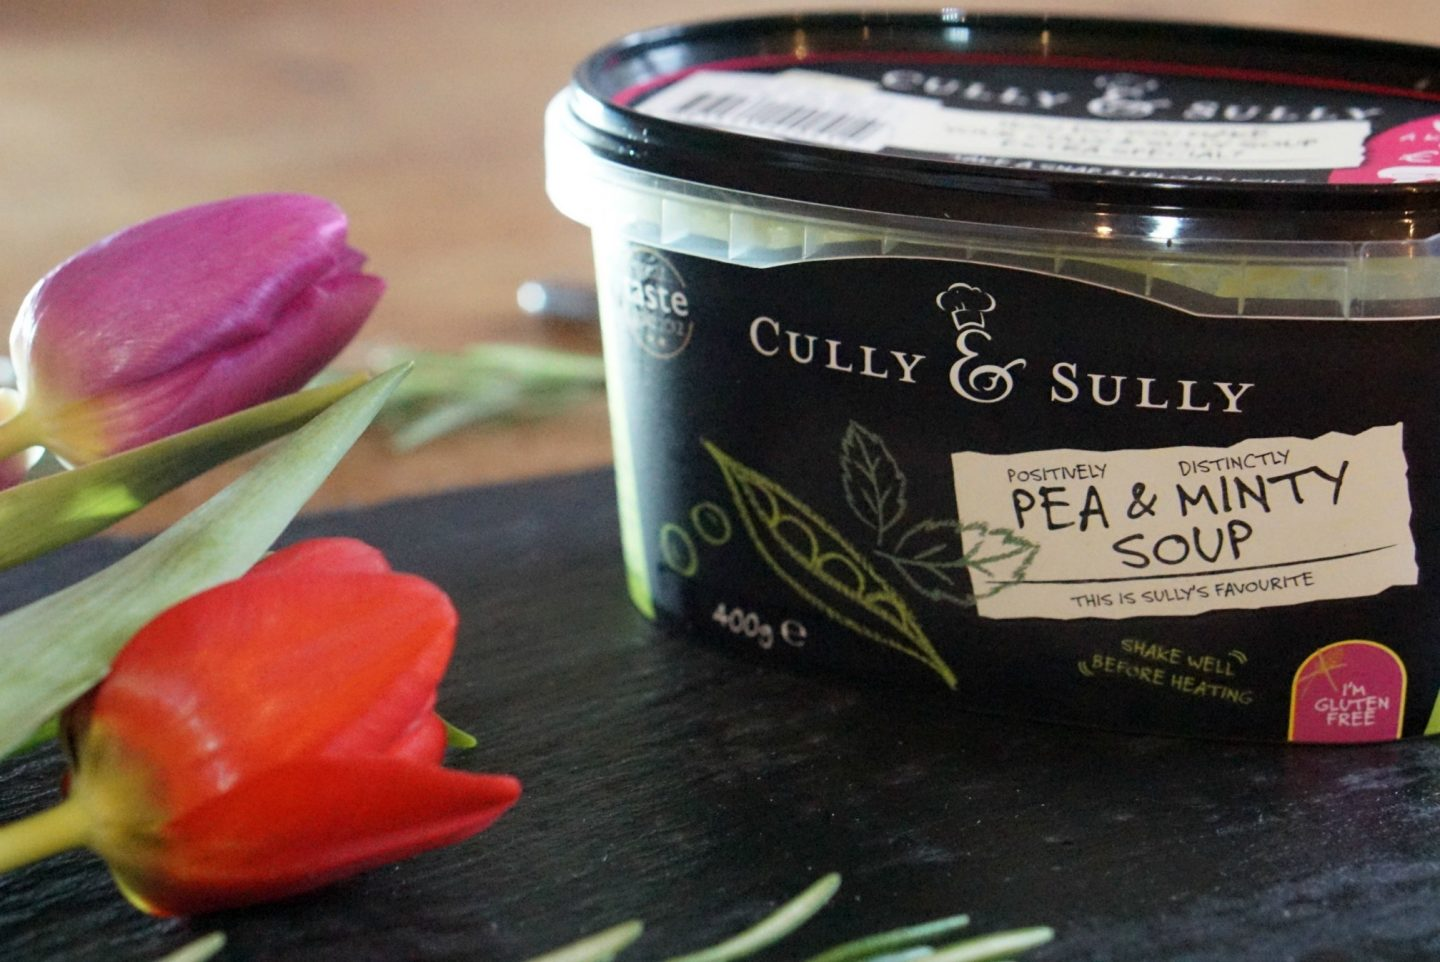 Delicious Cully and Scully Pea and Minty Soup www.extraordinarychaos.com